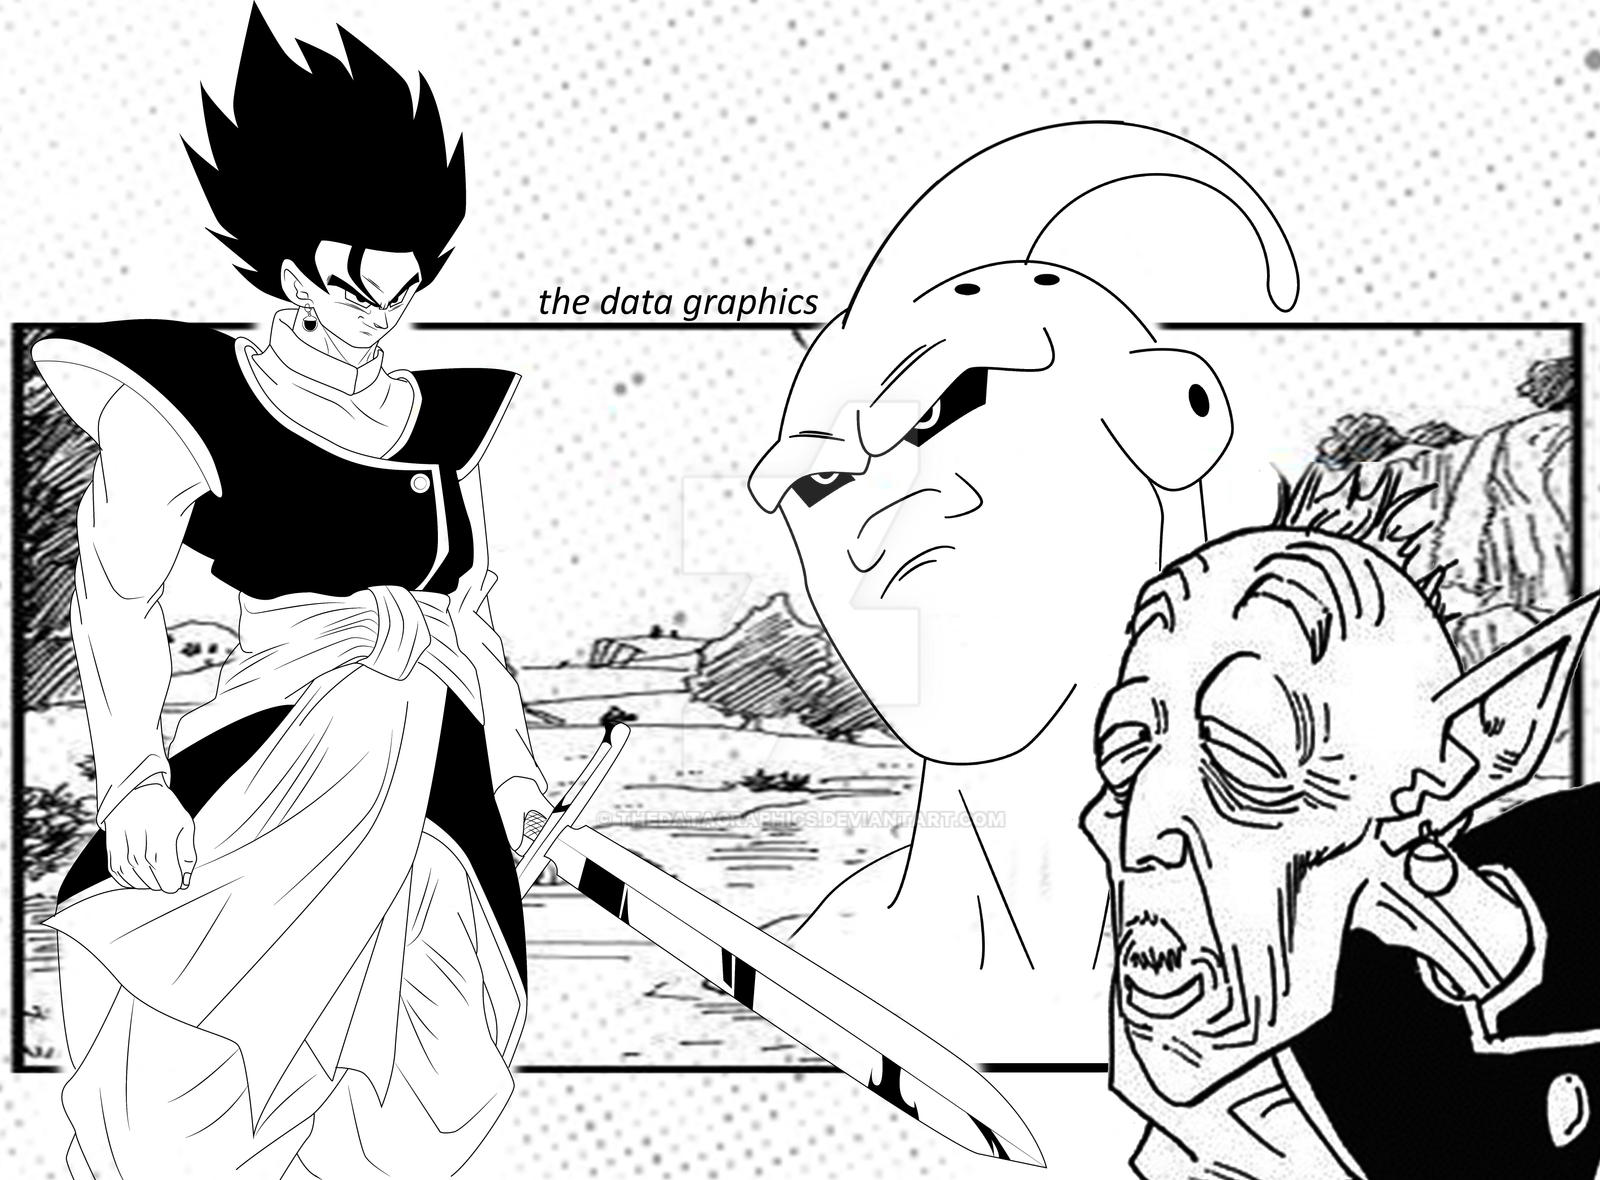 MYSTIC GOKU - LATENT POTENTIAL - DBZ - WHAT IF